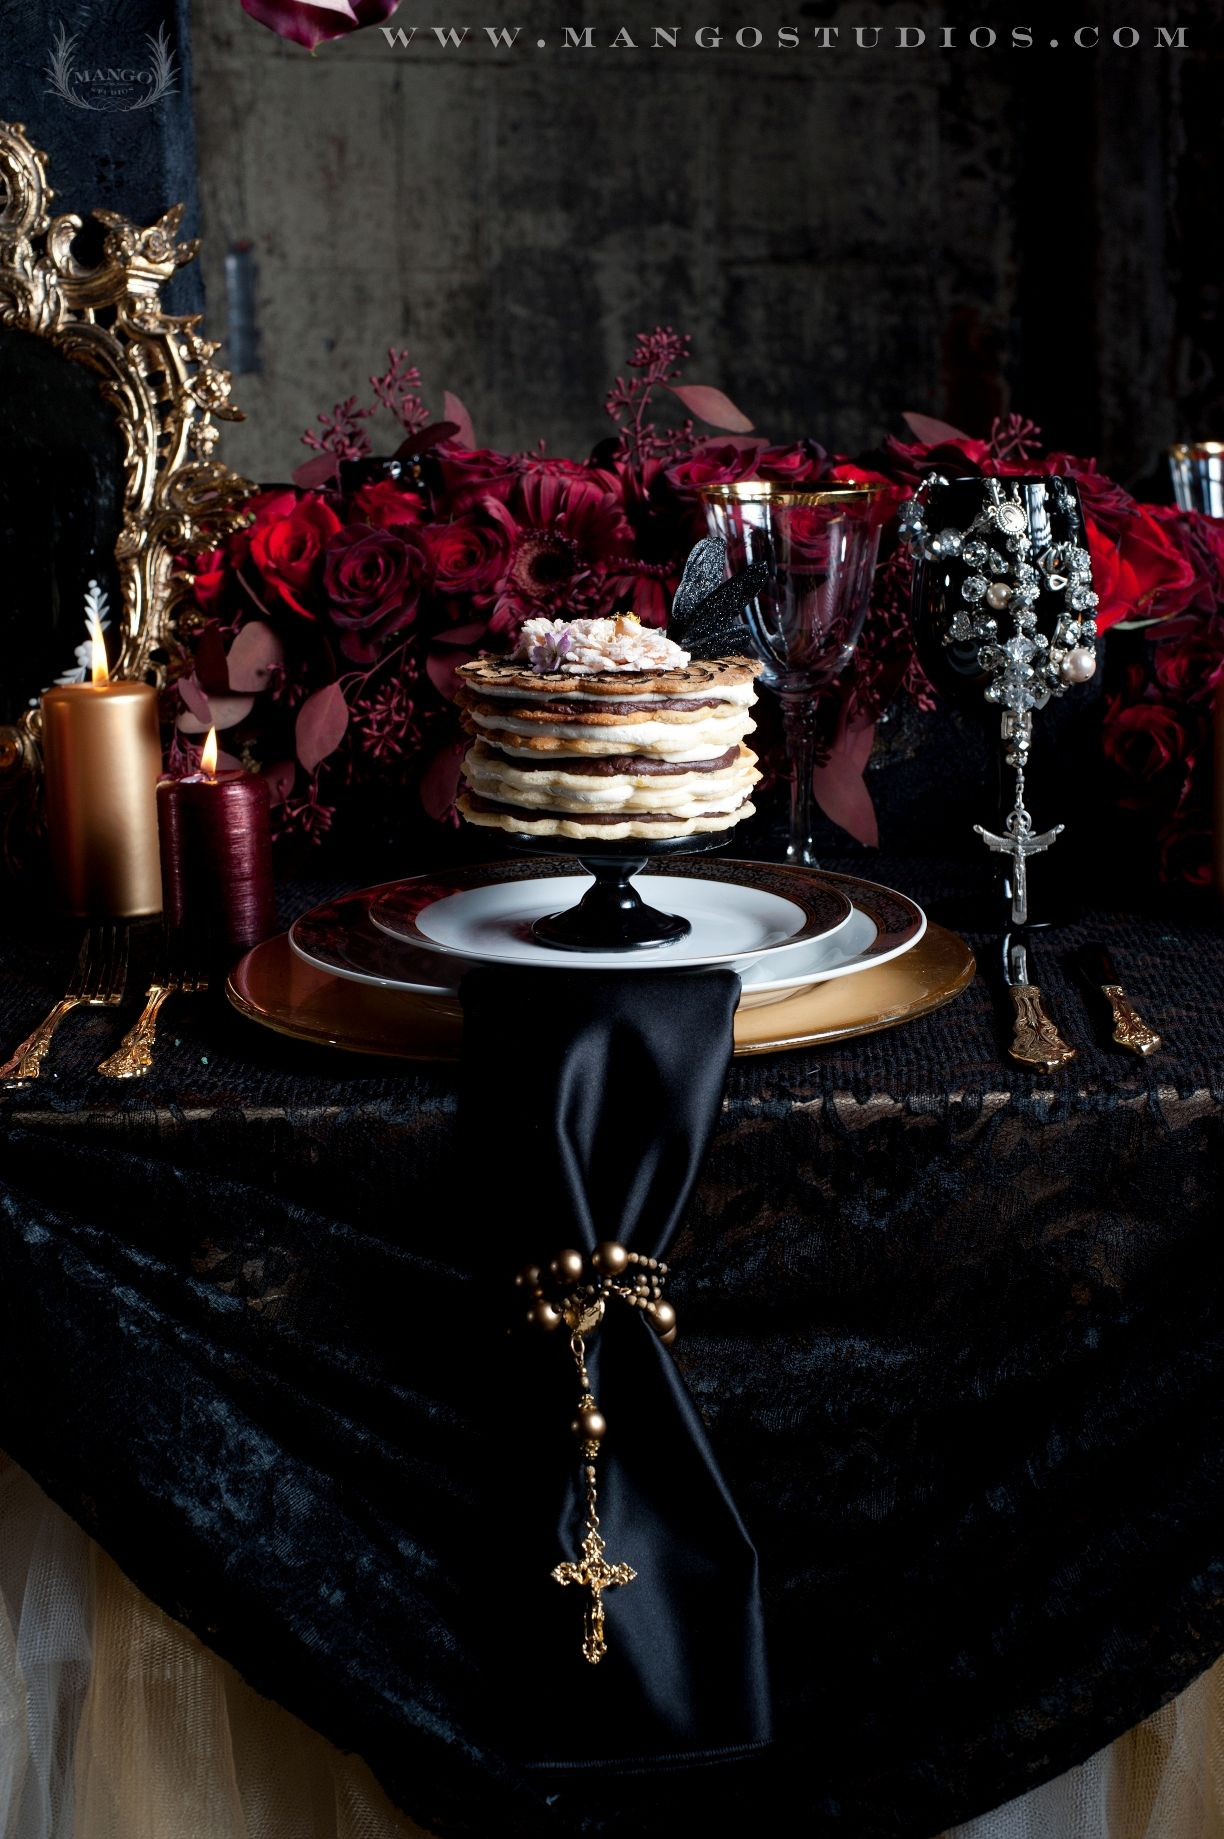 fabulous dinner setting elegant table scape black and red goth chic party time gothic. Black Bedroom Furniture Sets. Home Design Ideas